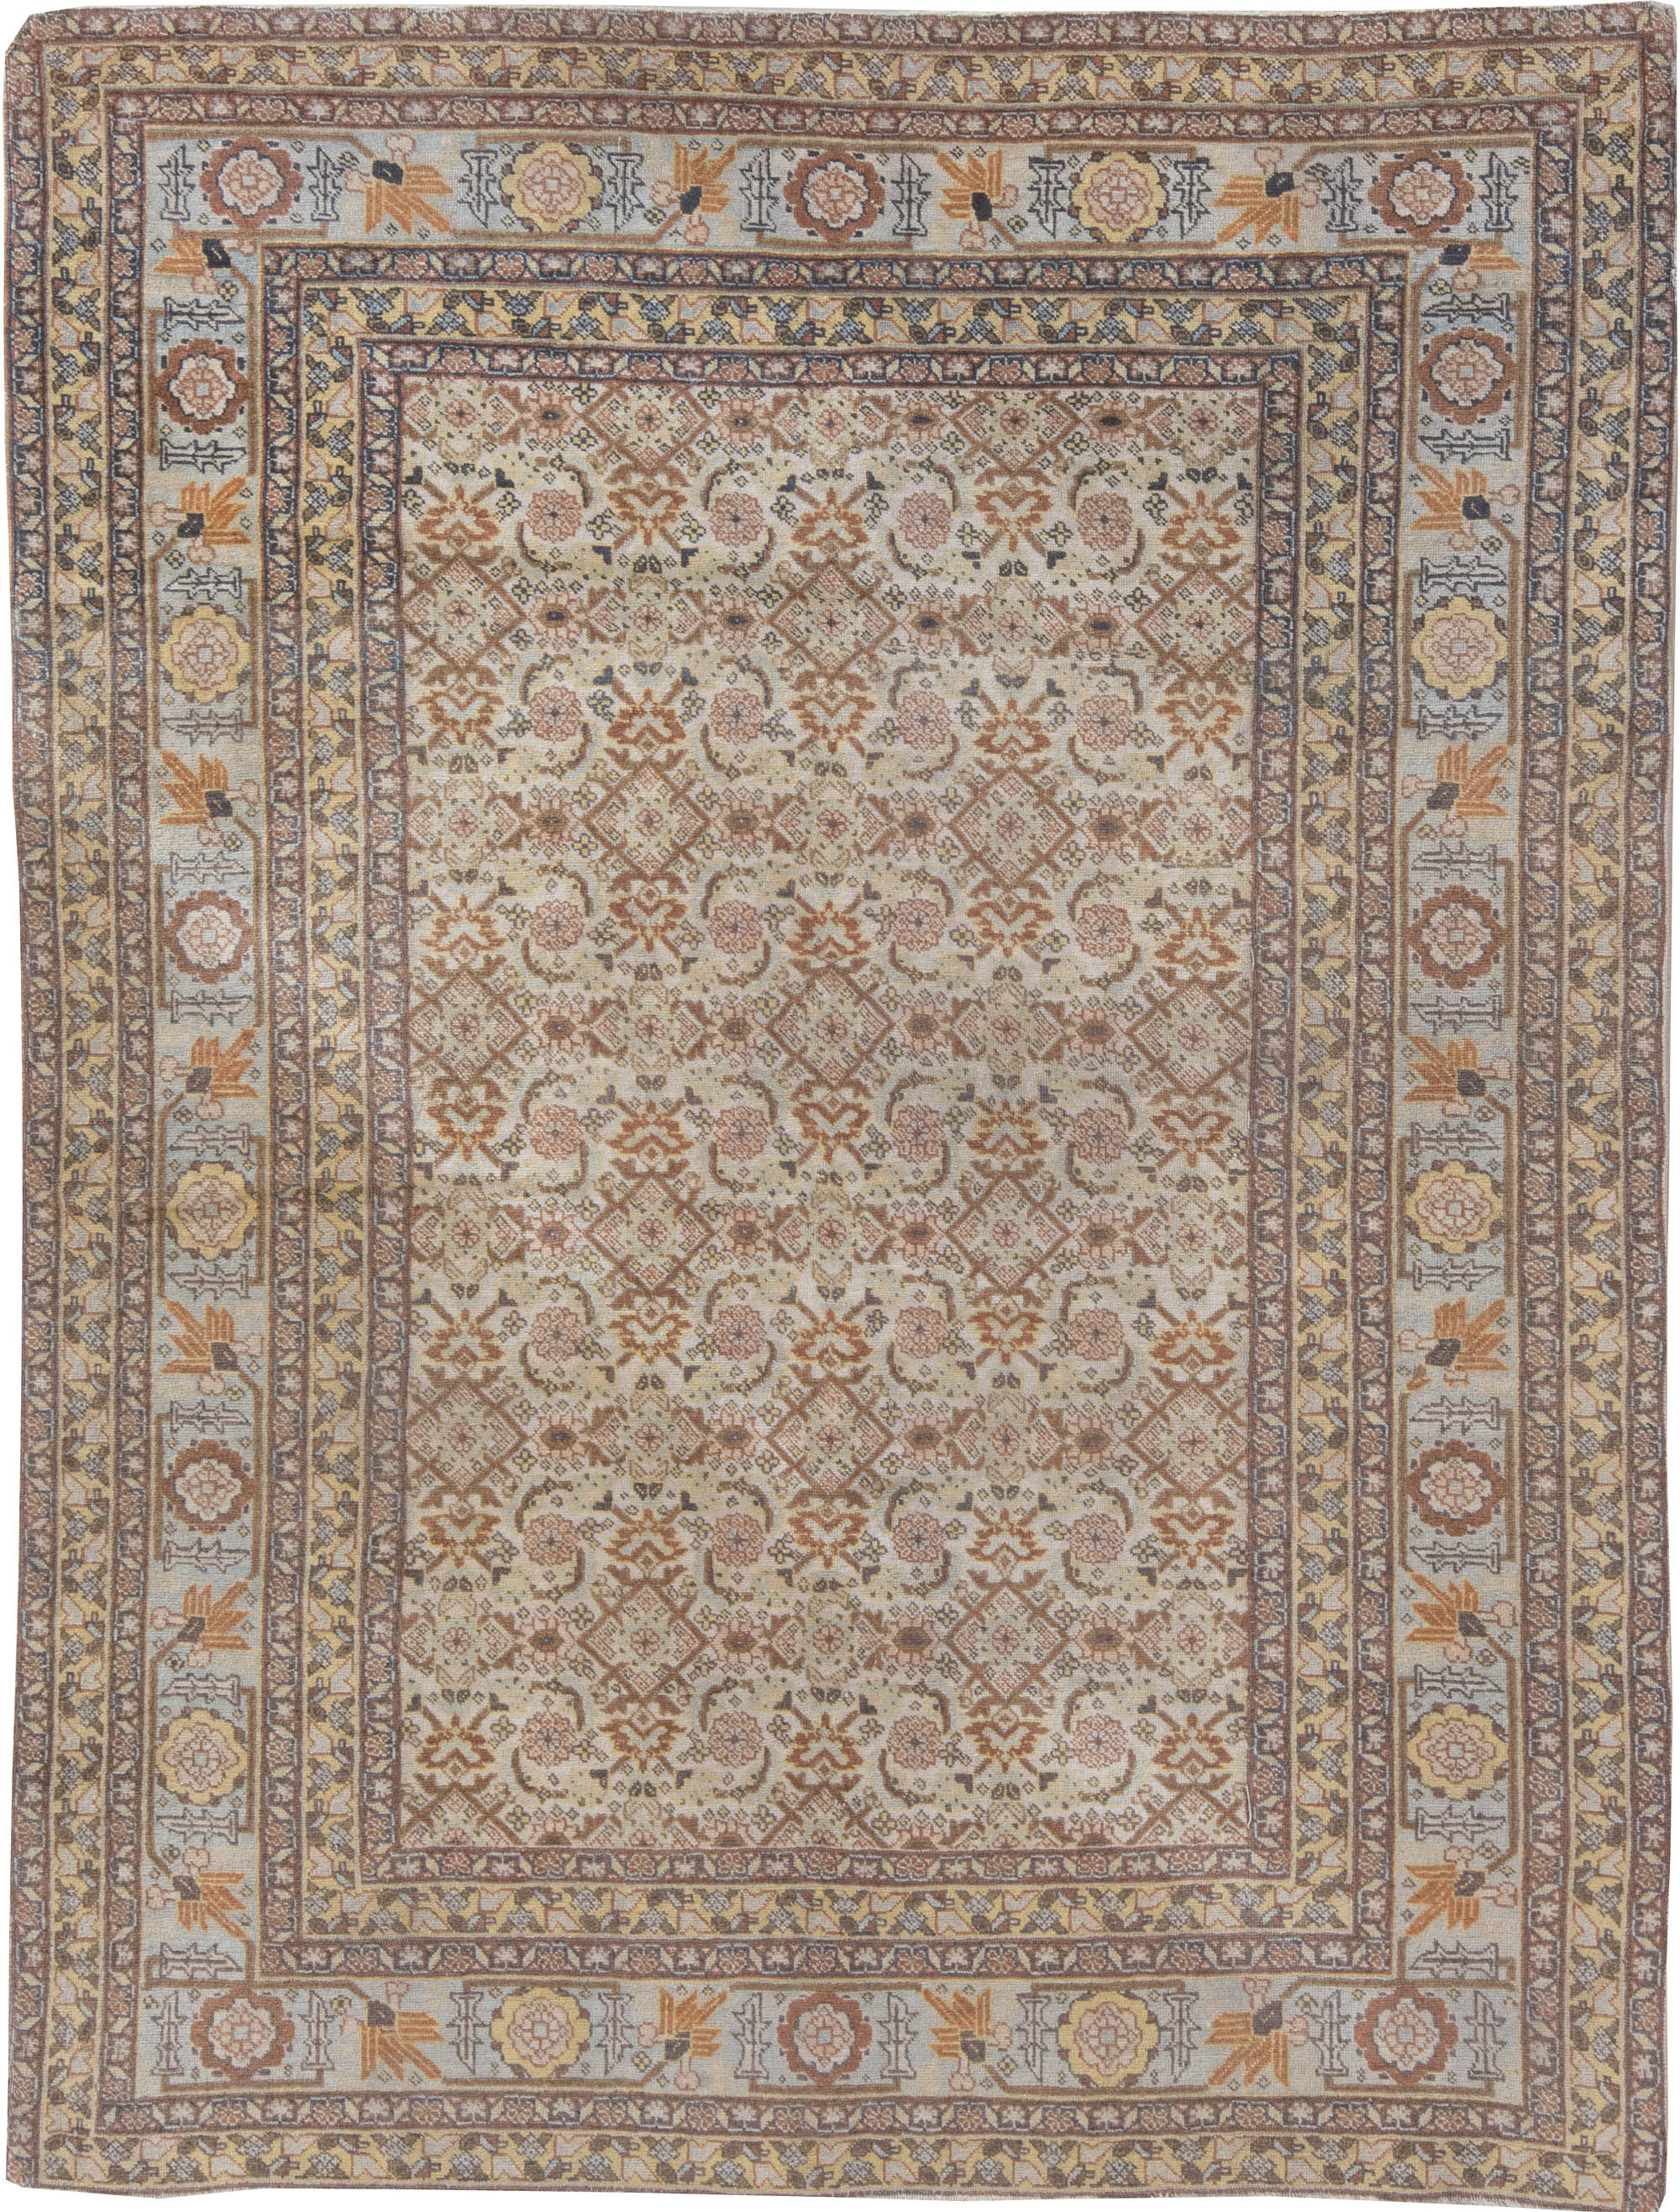 antique rugs from doris leslie blau new york antique carpets. Black Bedroom Furniture Sets. Home Design Ideas